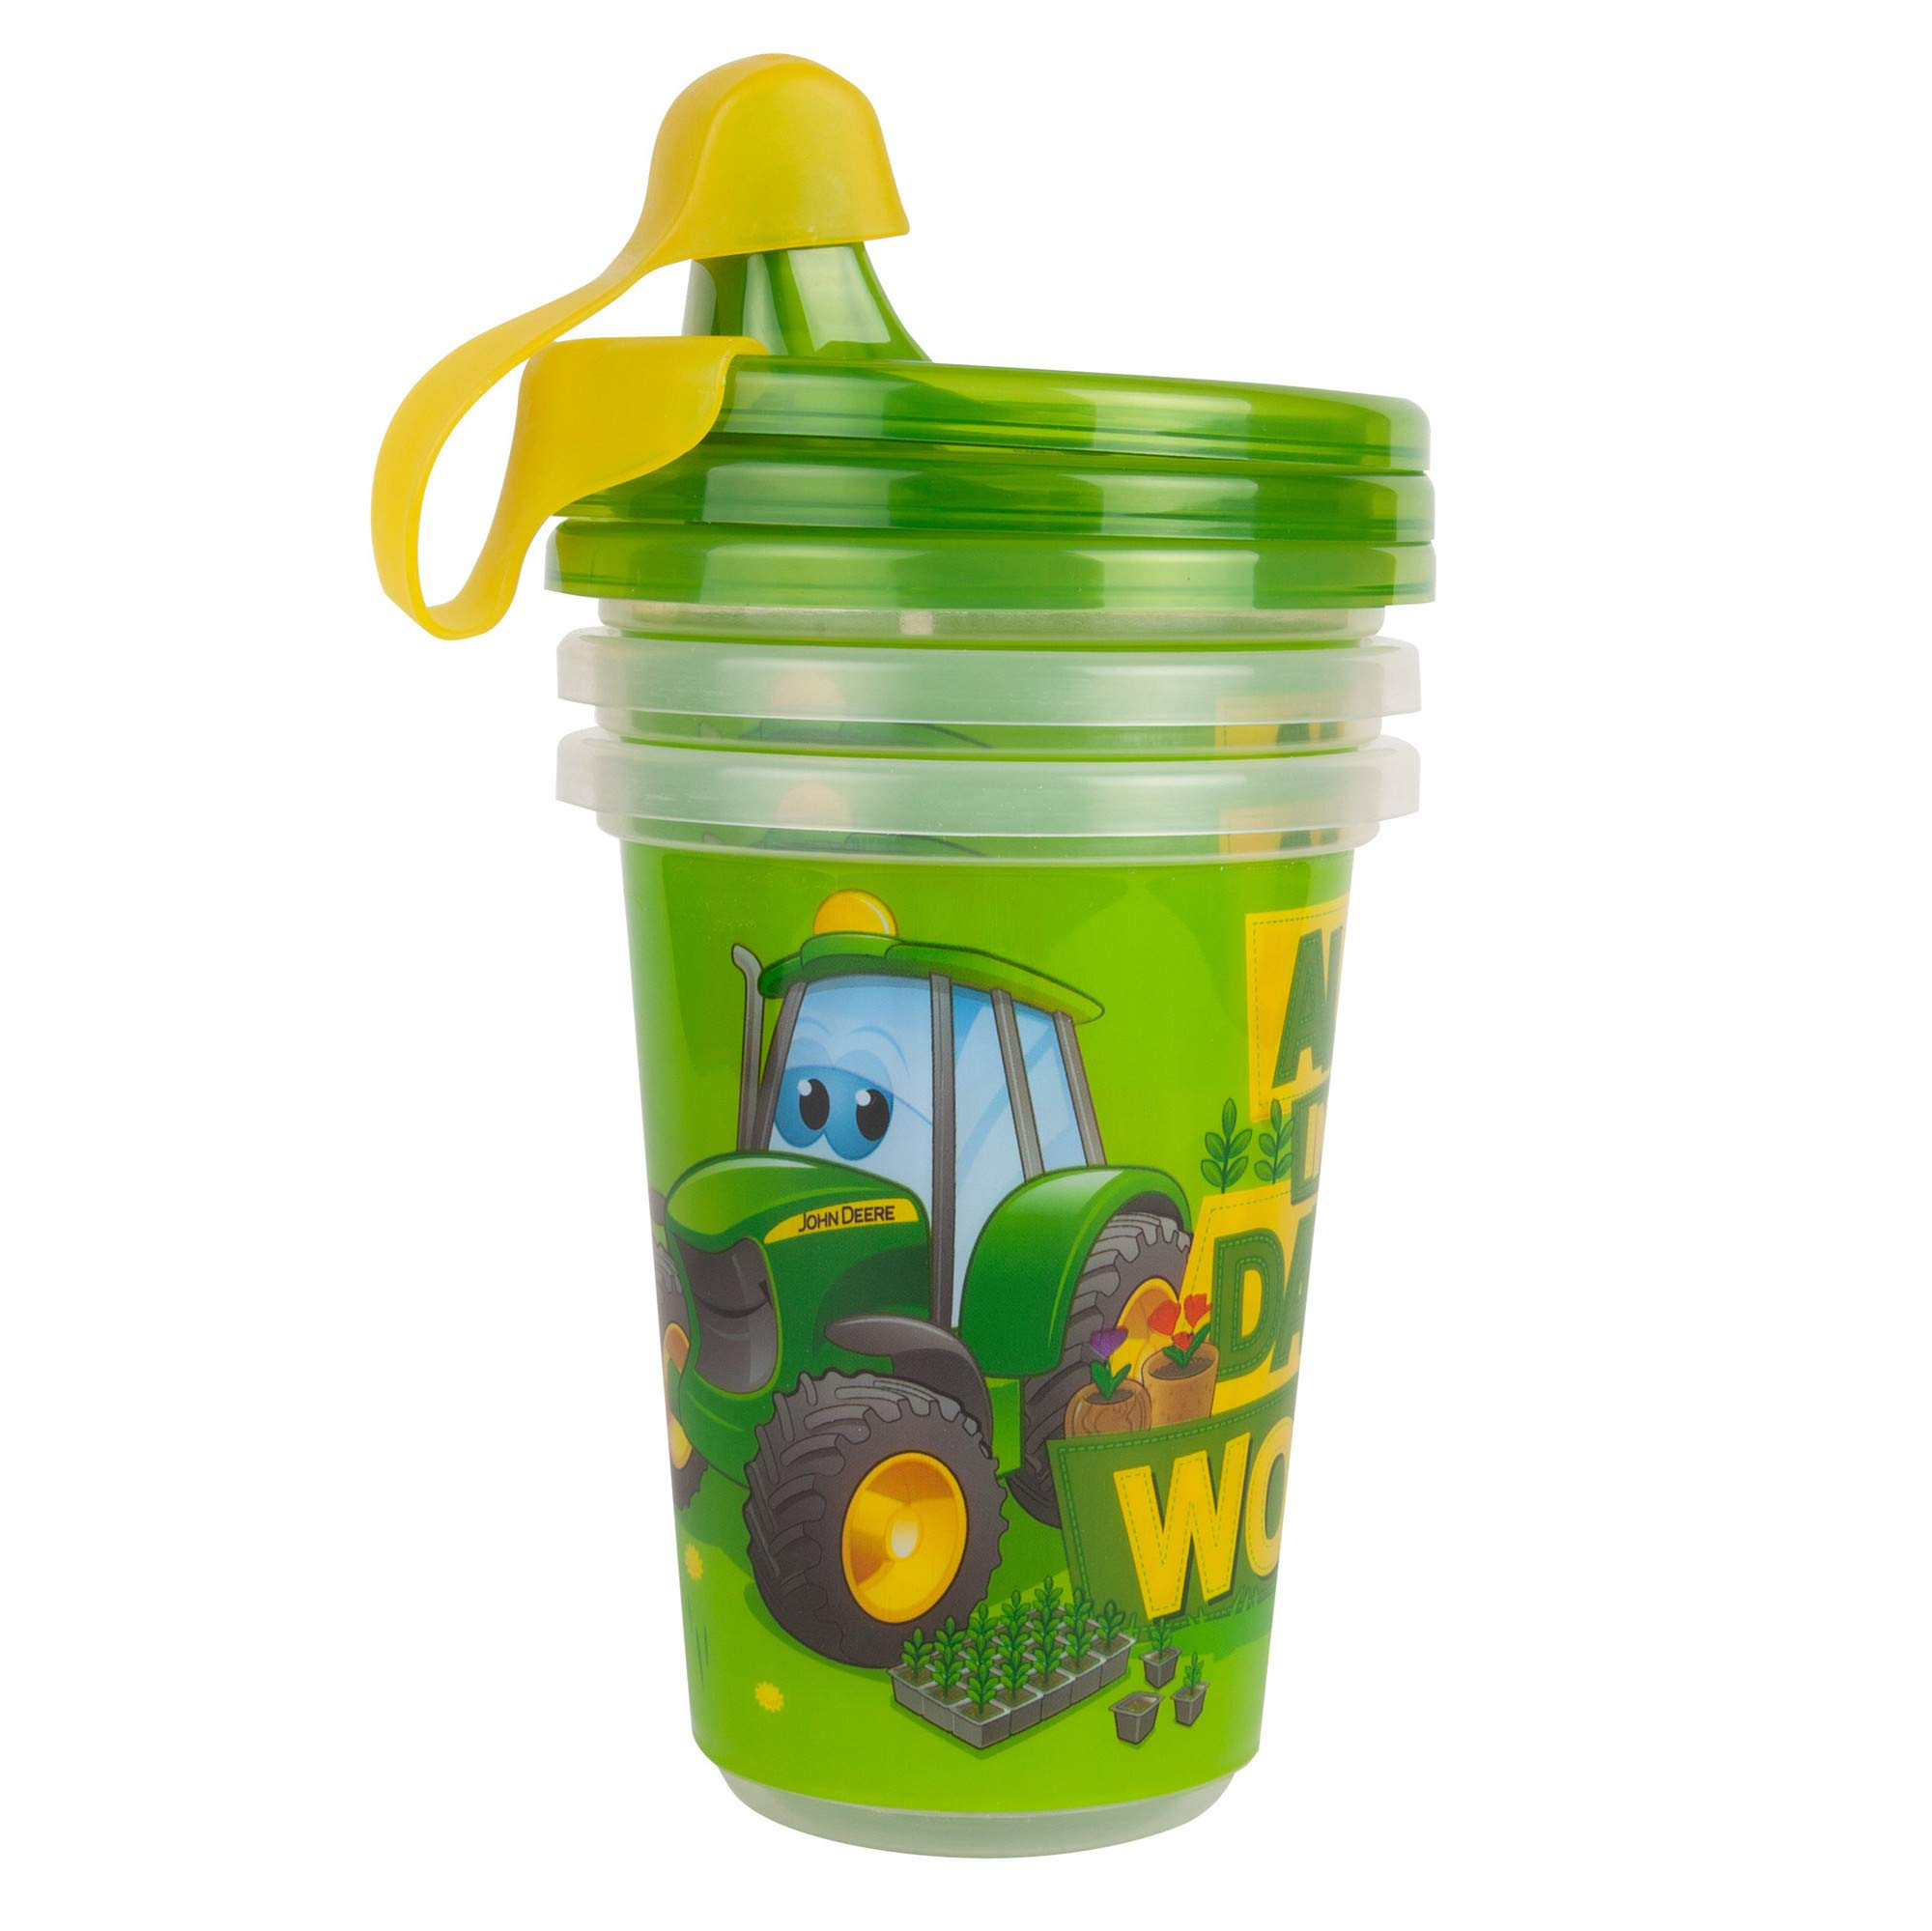 The First Years Take & Toss John Deere Sippy Cups, John Deere, 3 Pack